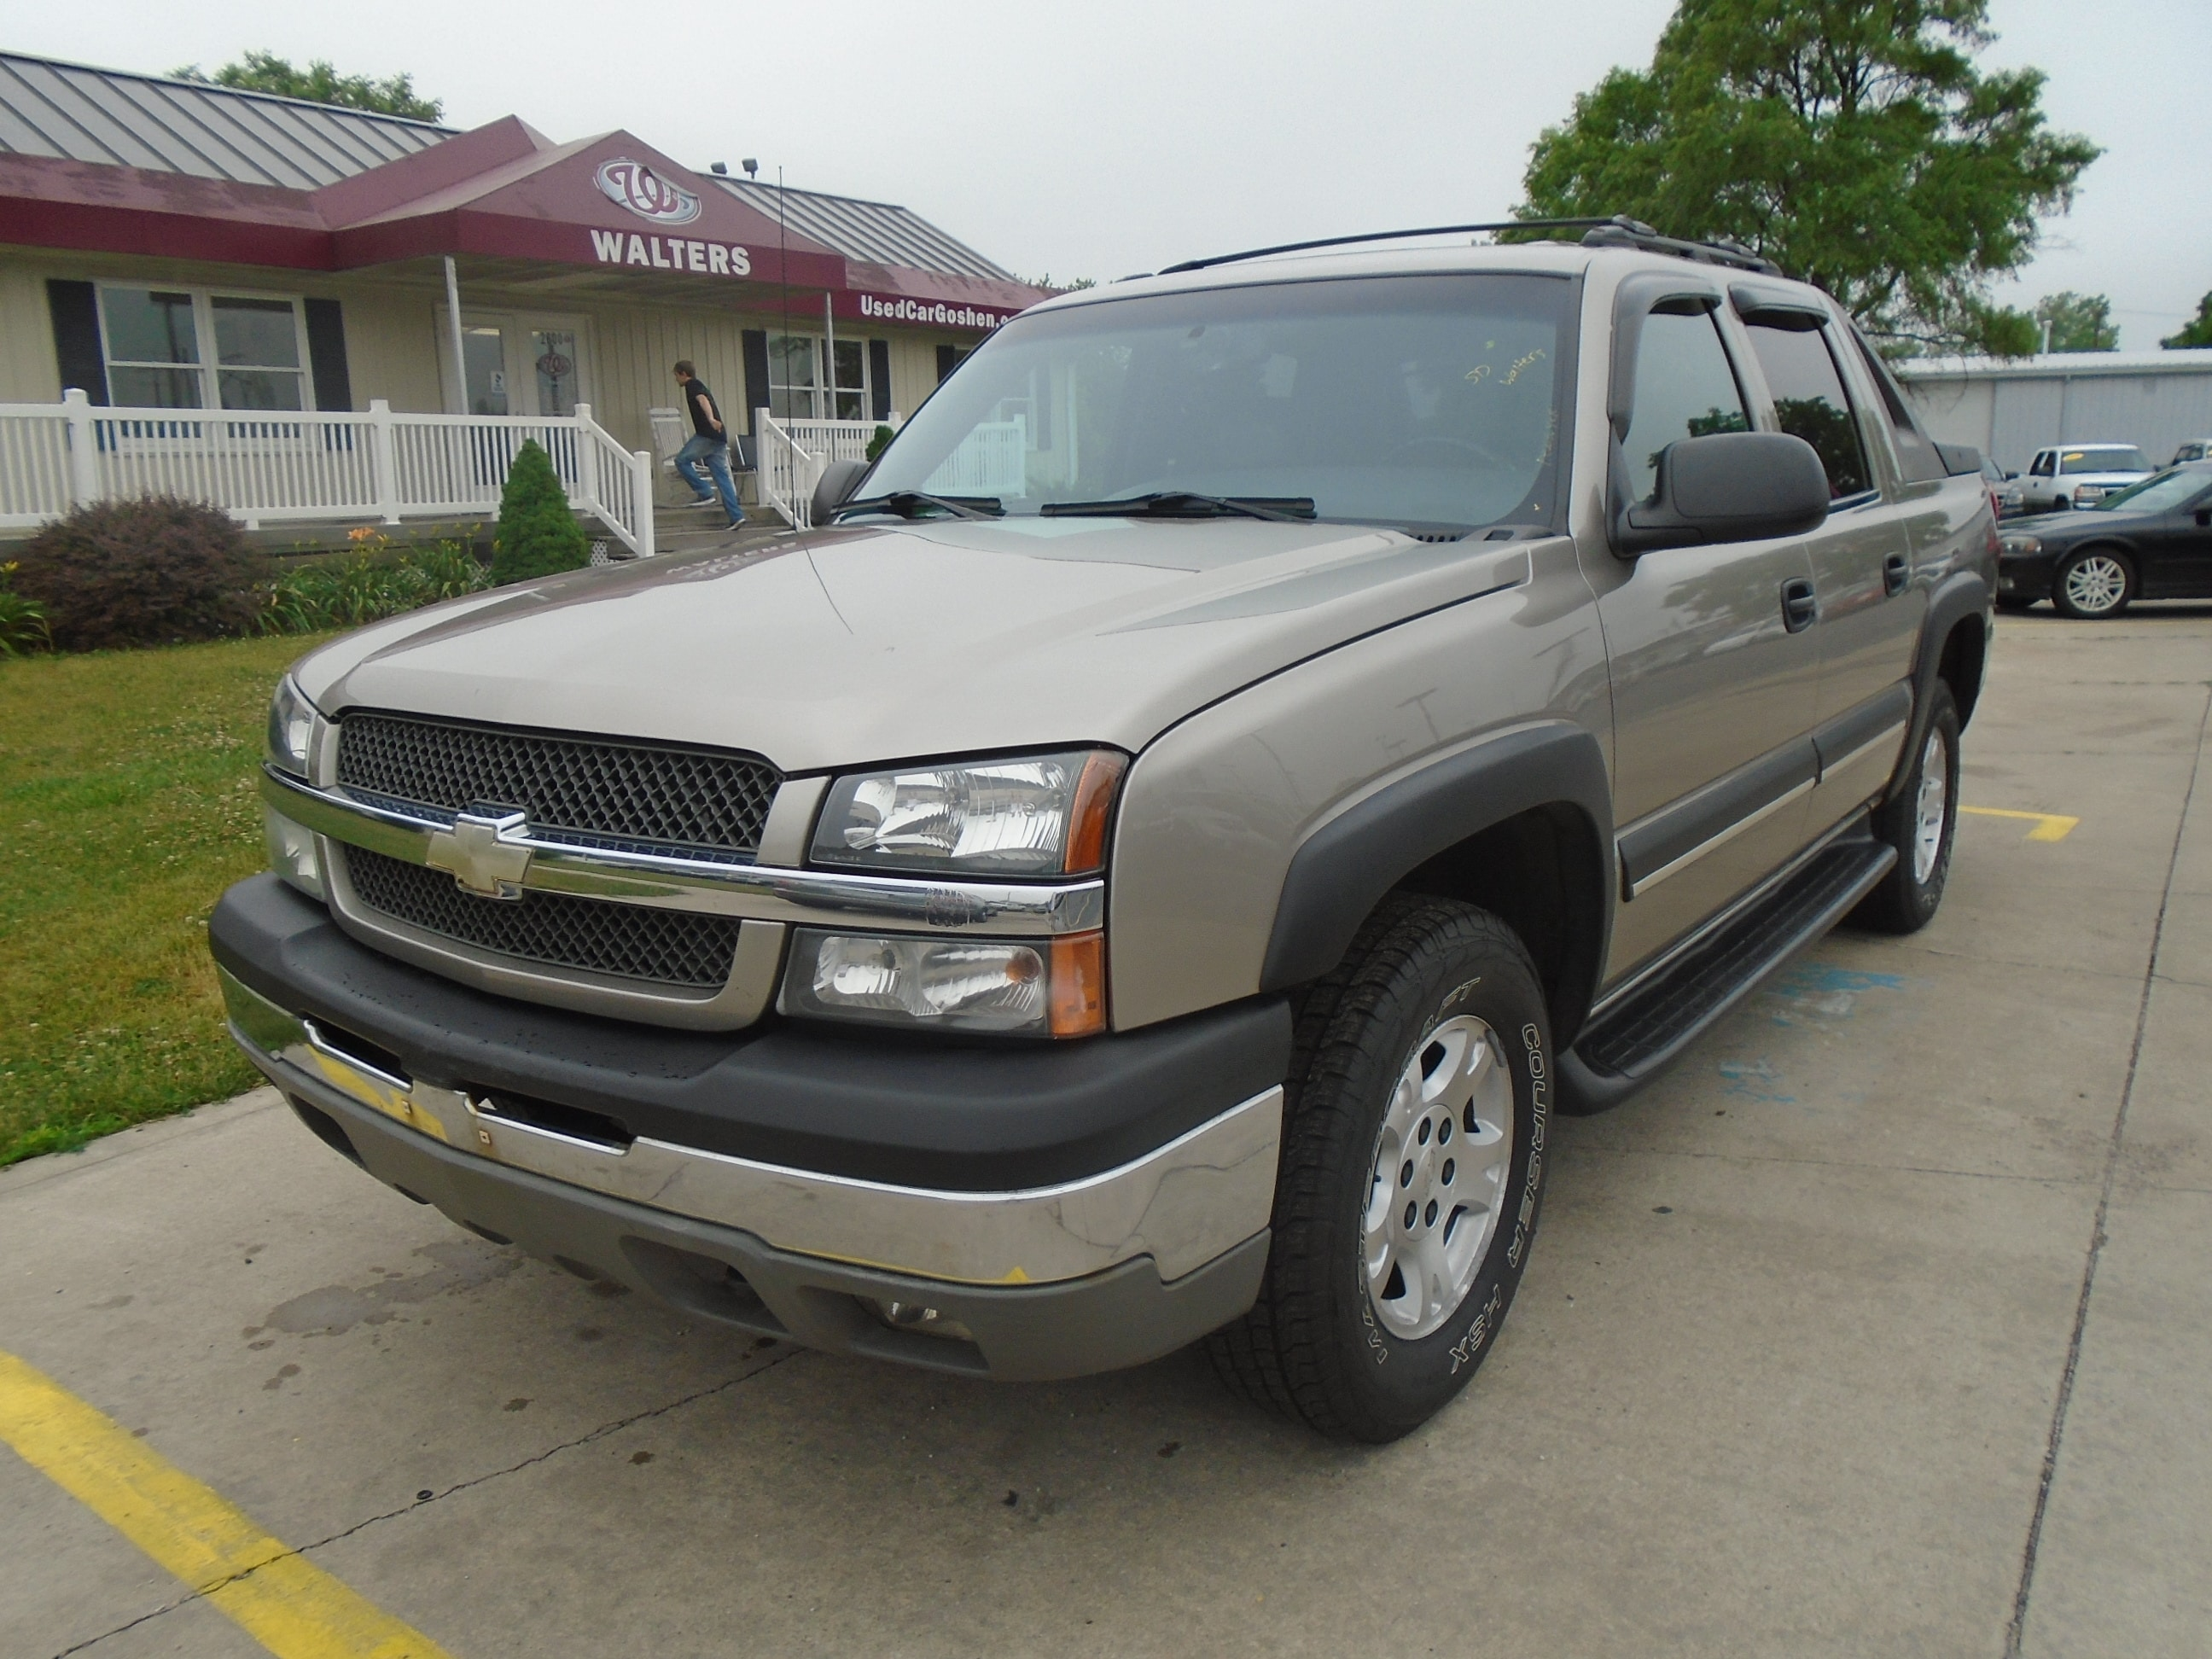 used 2003 chevrolet avalanche 1500 for sale goshen in elkhart south bend fort wayne indiana. Black Bedroom Furniture Sets. Home Design Ideas